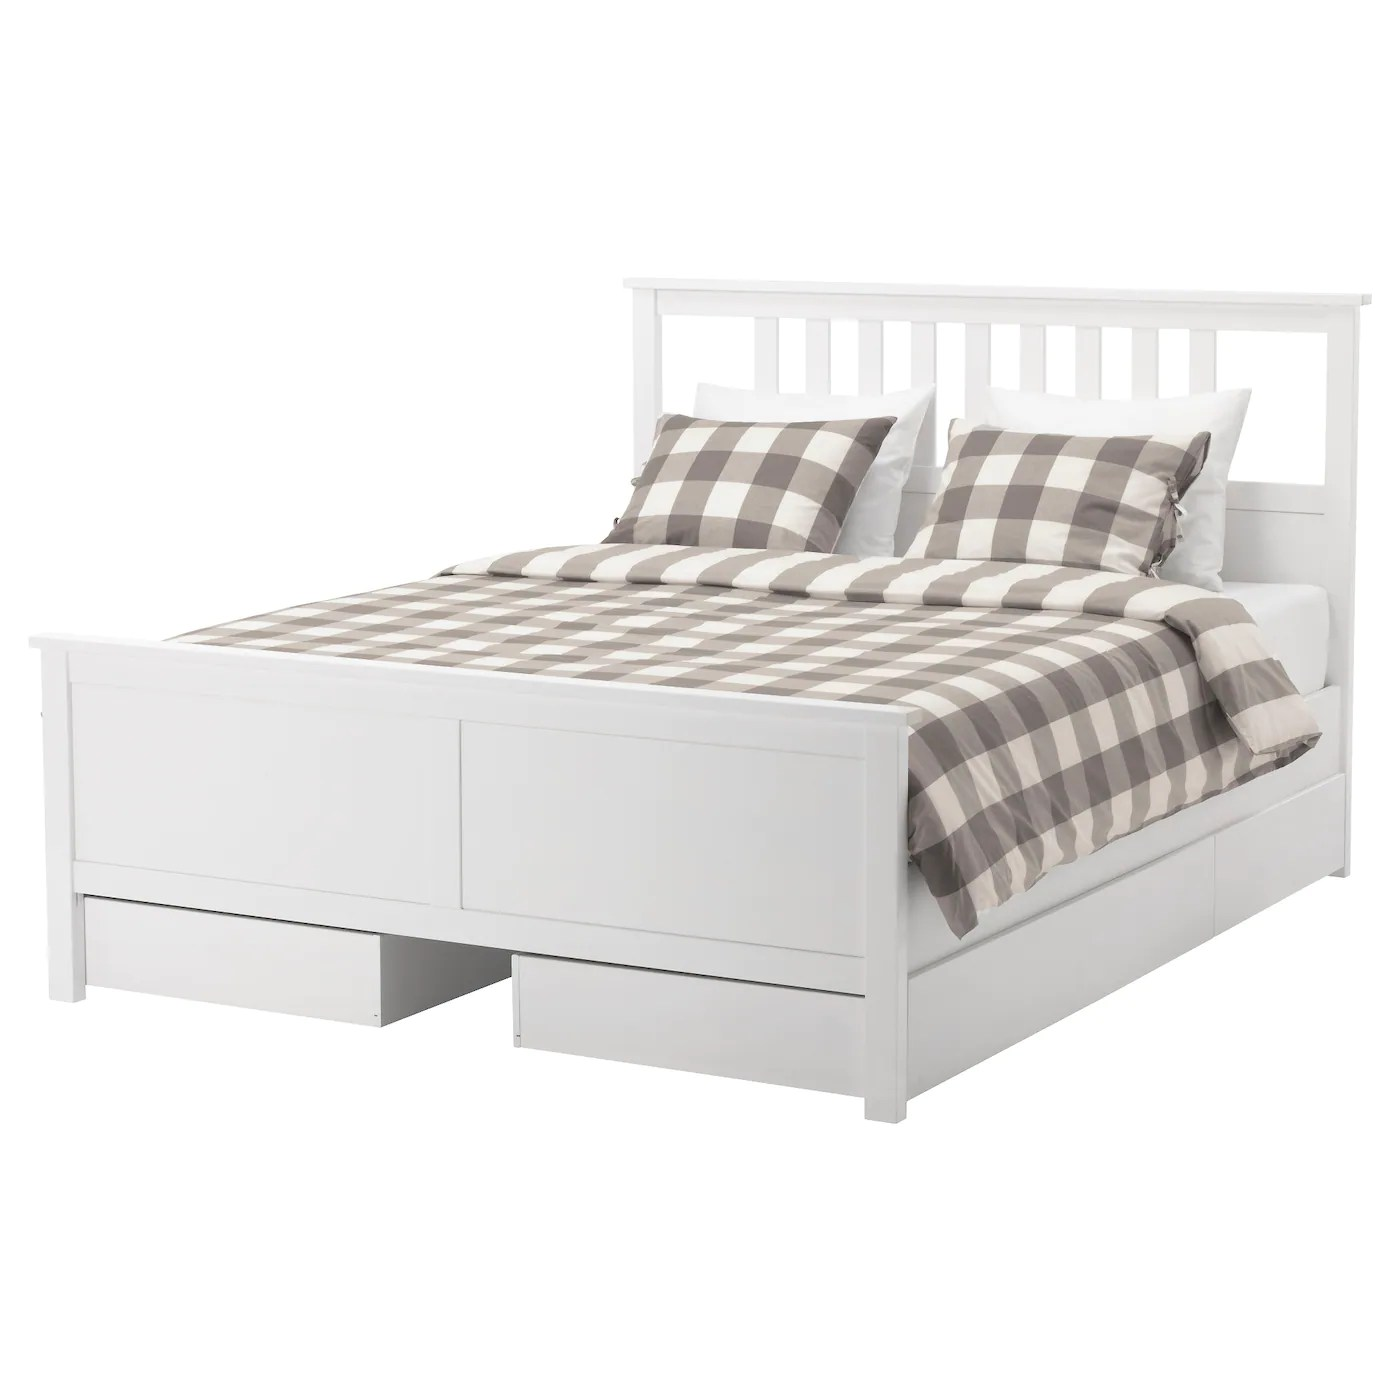 Storage Beds Edmonton Beds Bed Frames Ikea